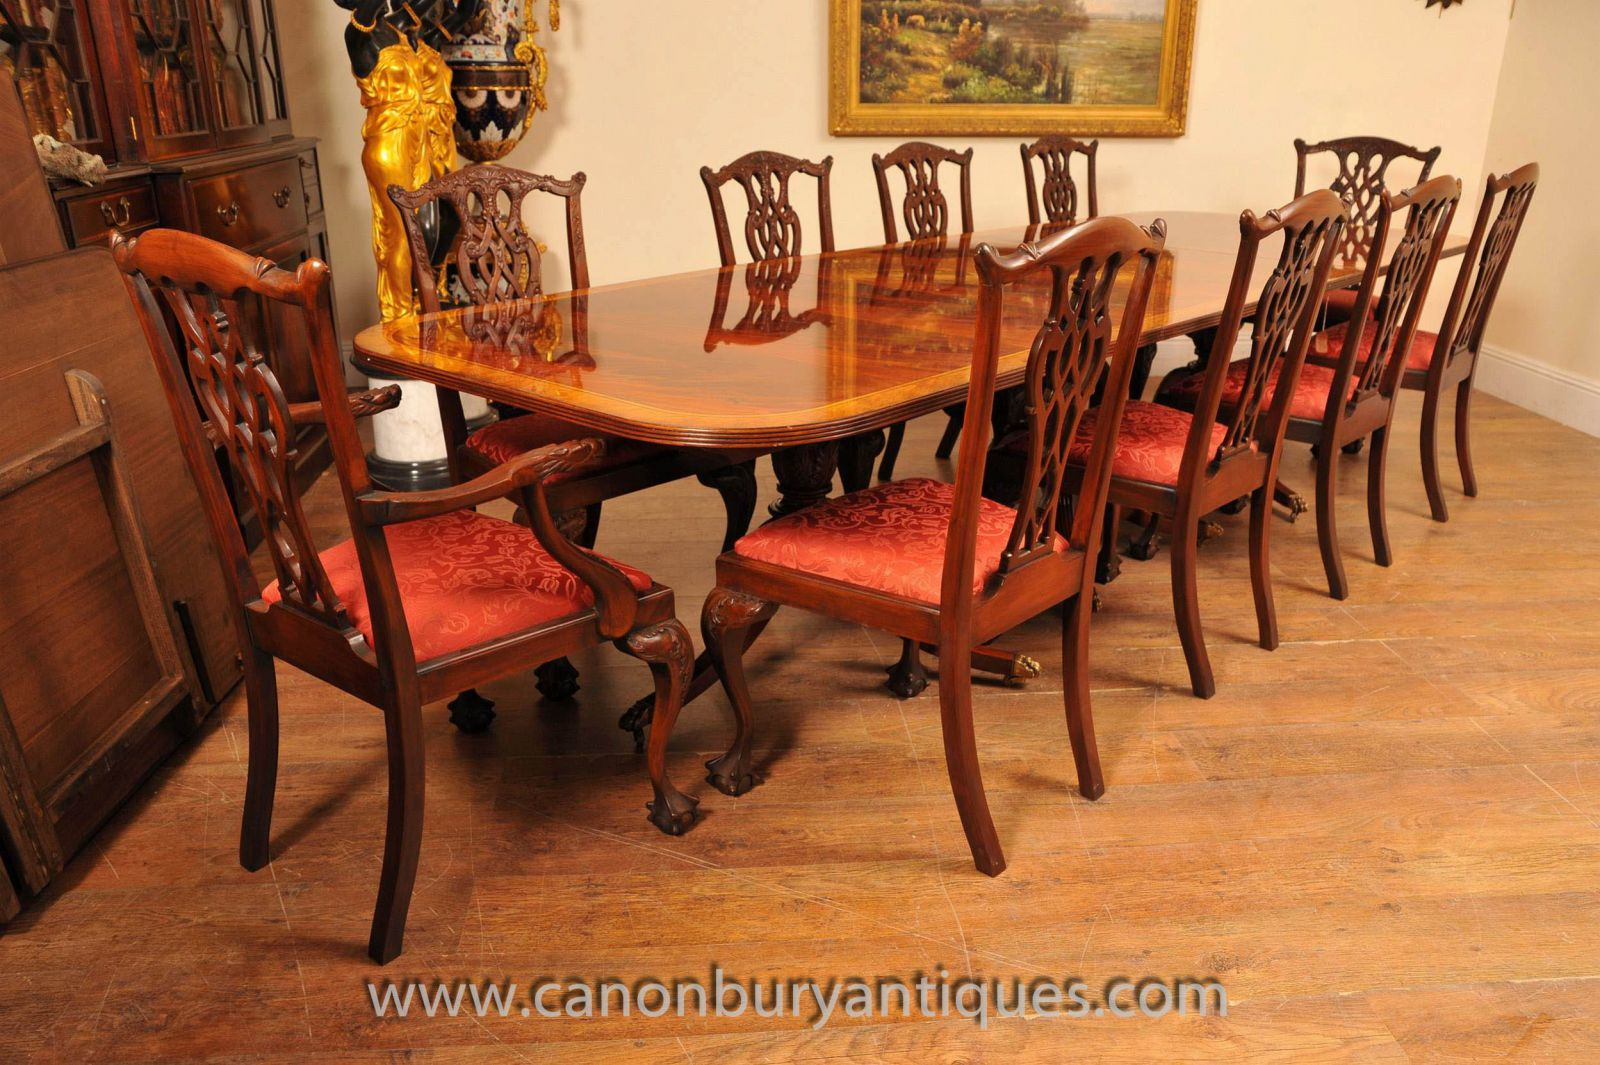 Regency Table and Set Chippendale Dining Chairs Set www_canonburyantiques_com-2